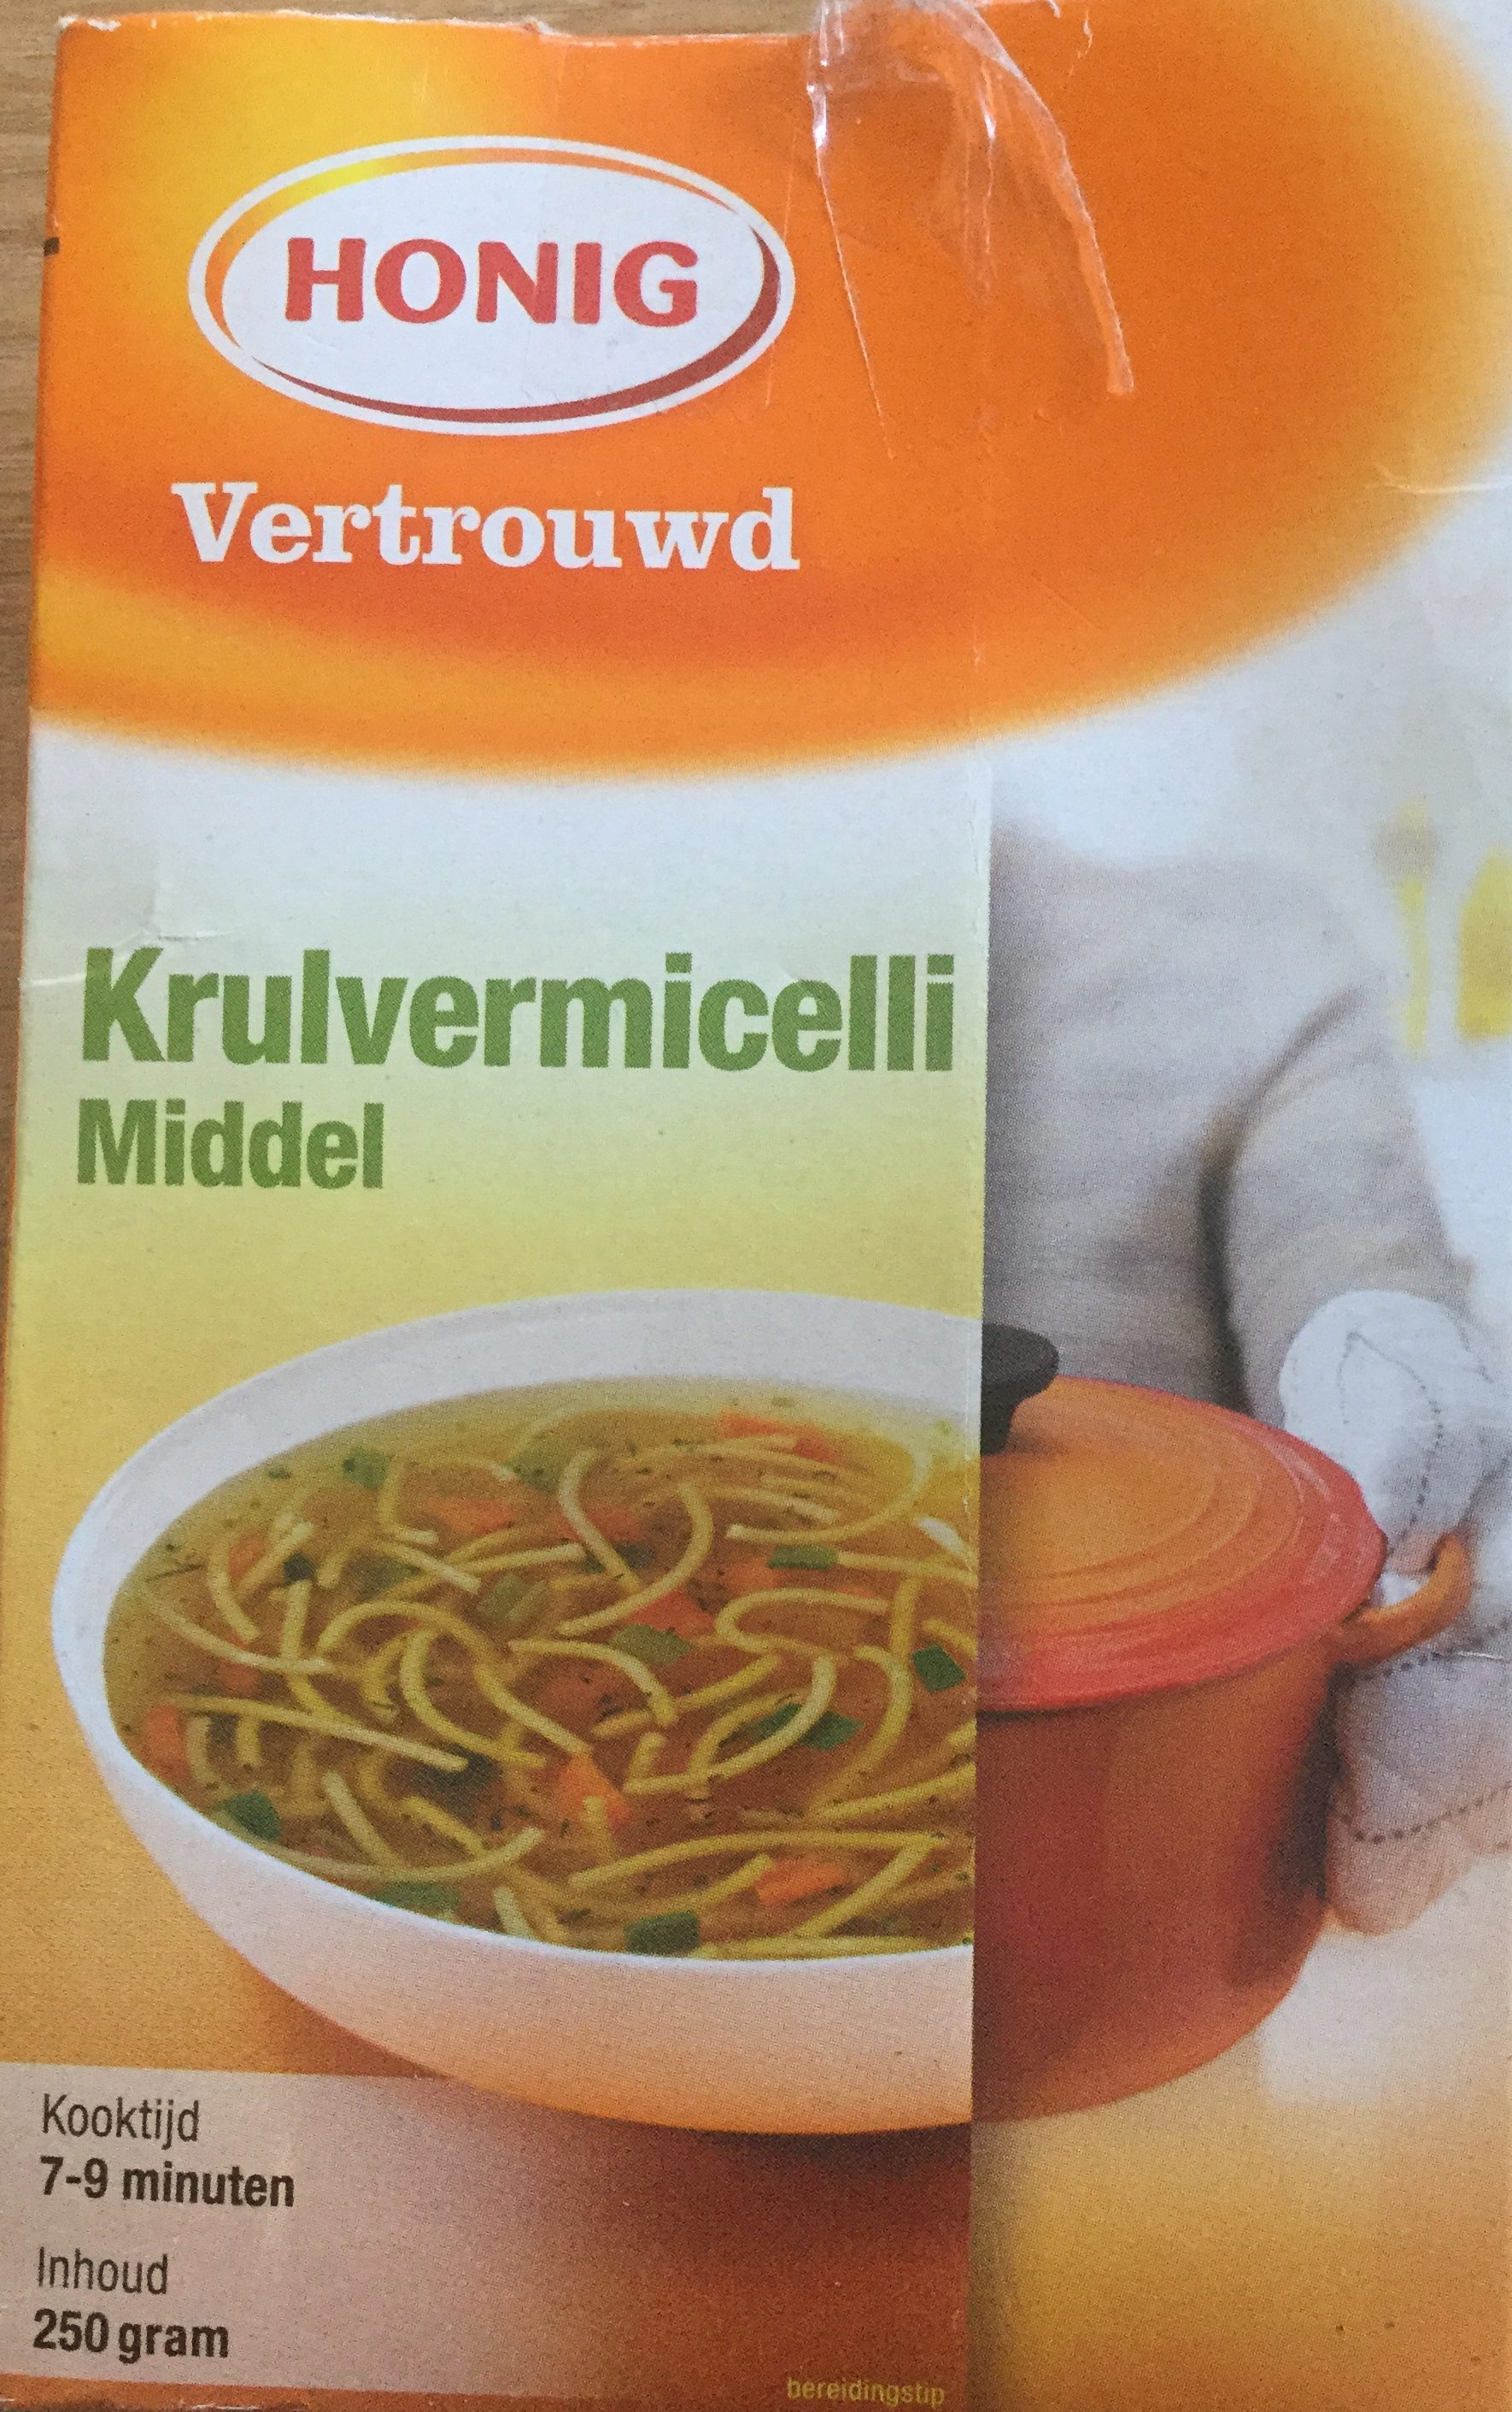 Krulvermicelli middel - Product